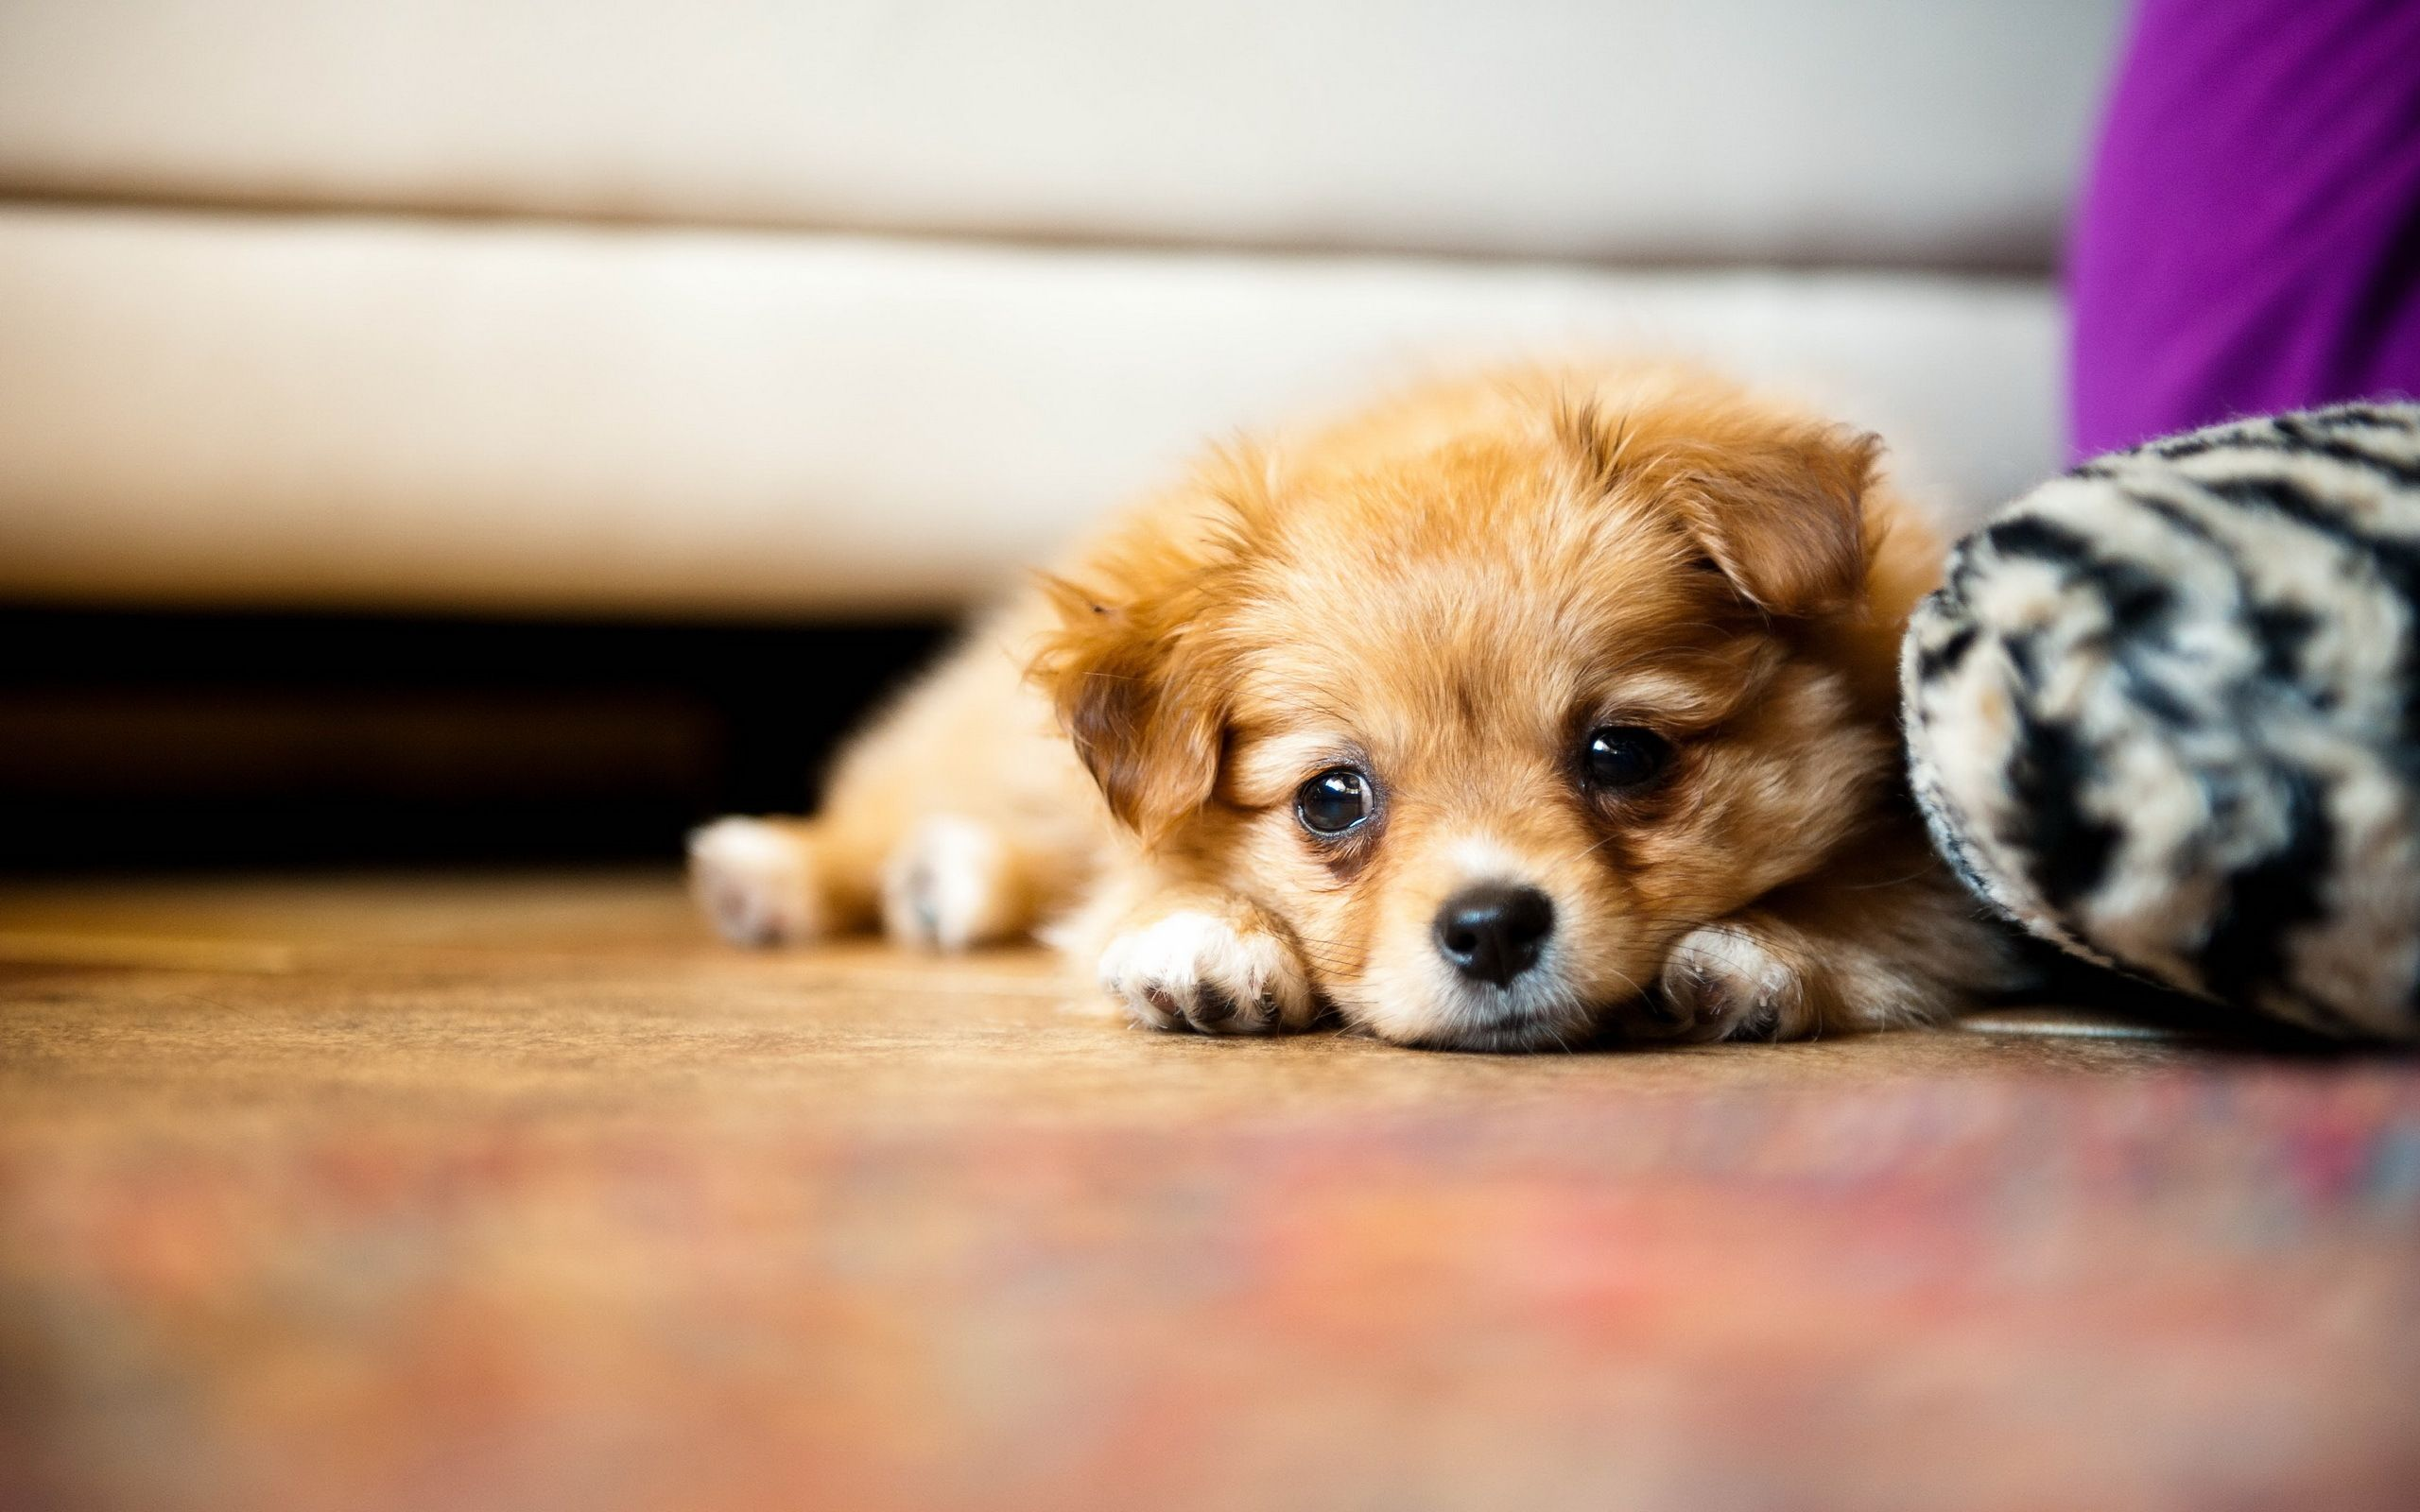 Cute Little Puppy Wallpapers Pictures Photos Images Wallpaper Cute Puppy Wallpaper Cute Puppy Pictures Puppies